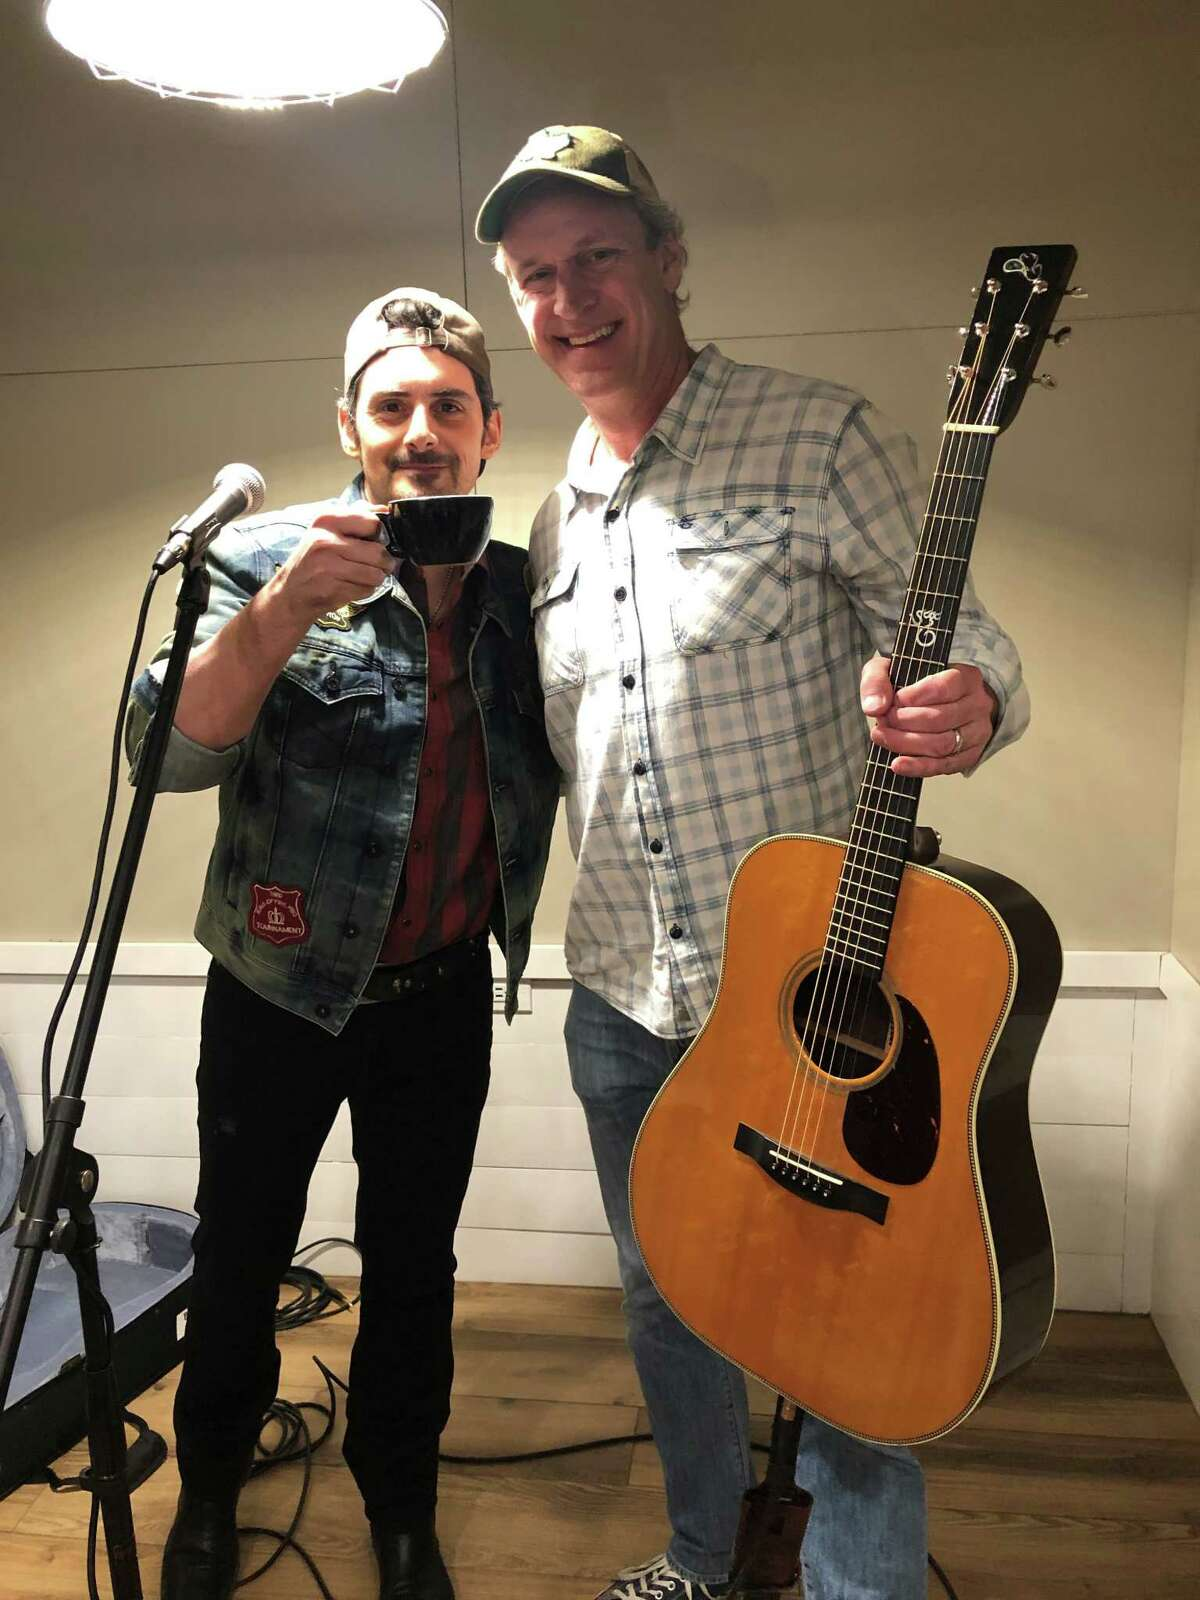 Blue Door Coffee Company owner Chad Gauntt is good friends with Brad Paisley, who popped in for a surprise gig.